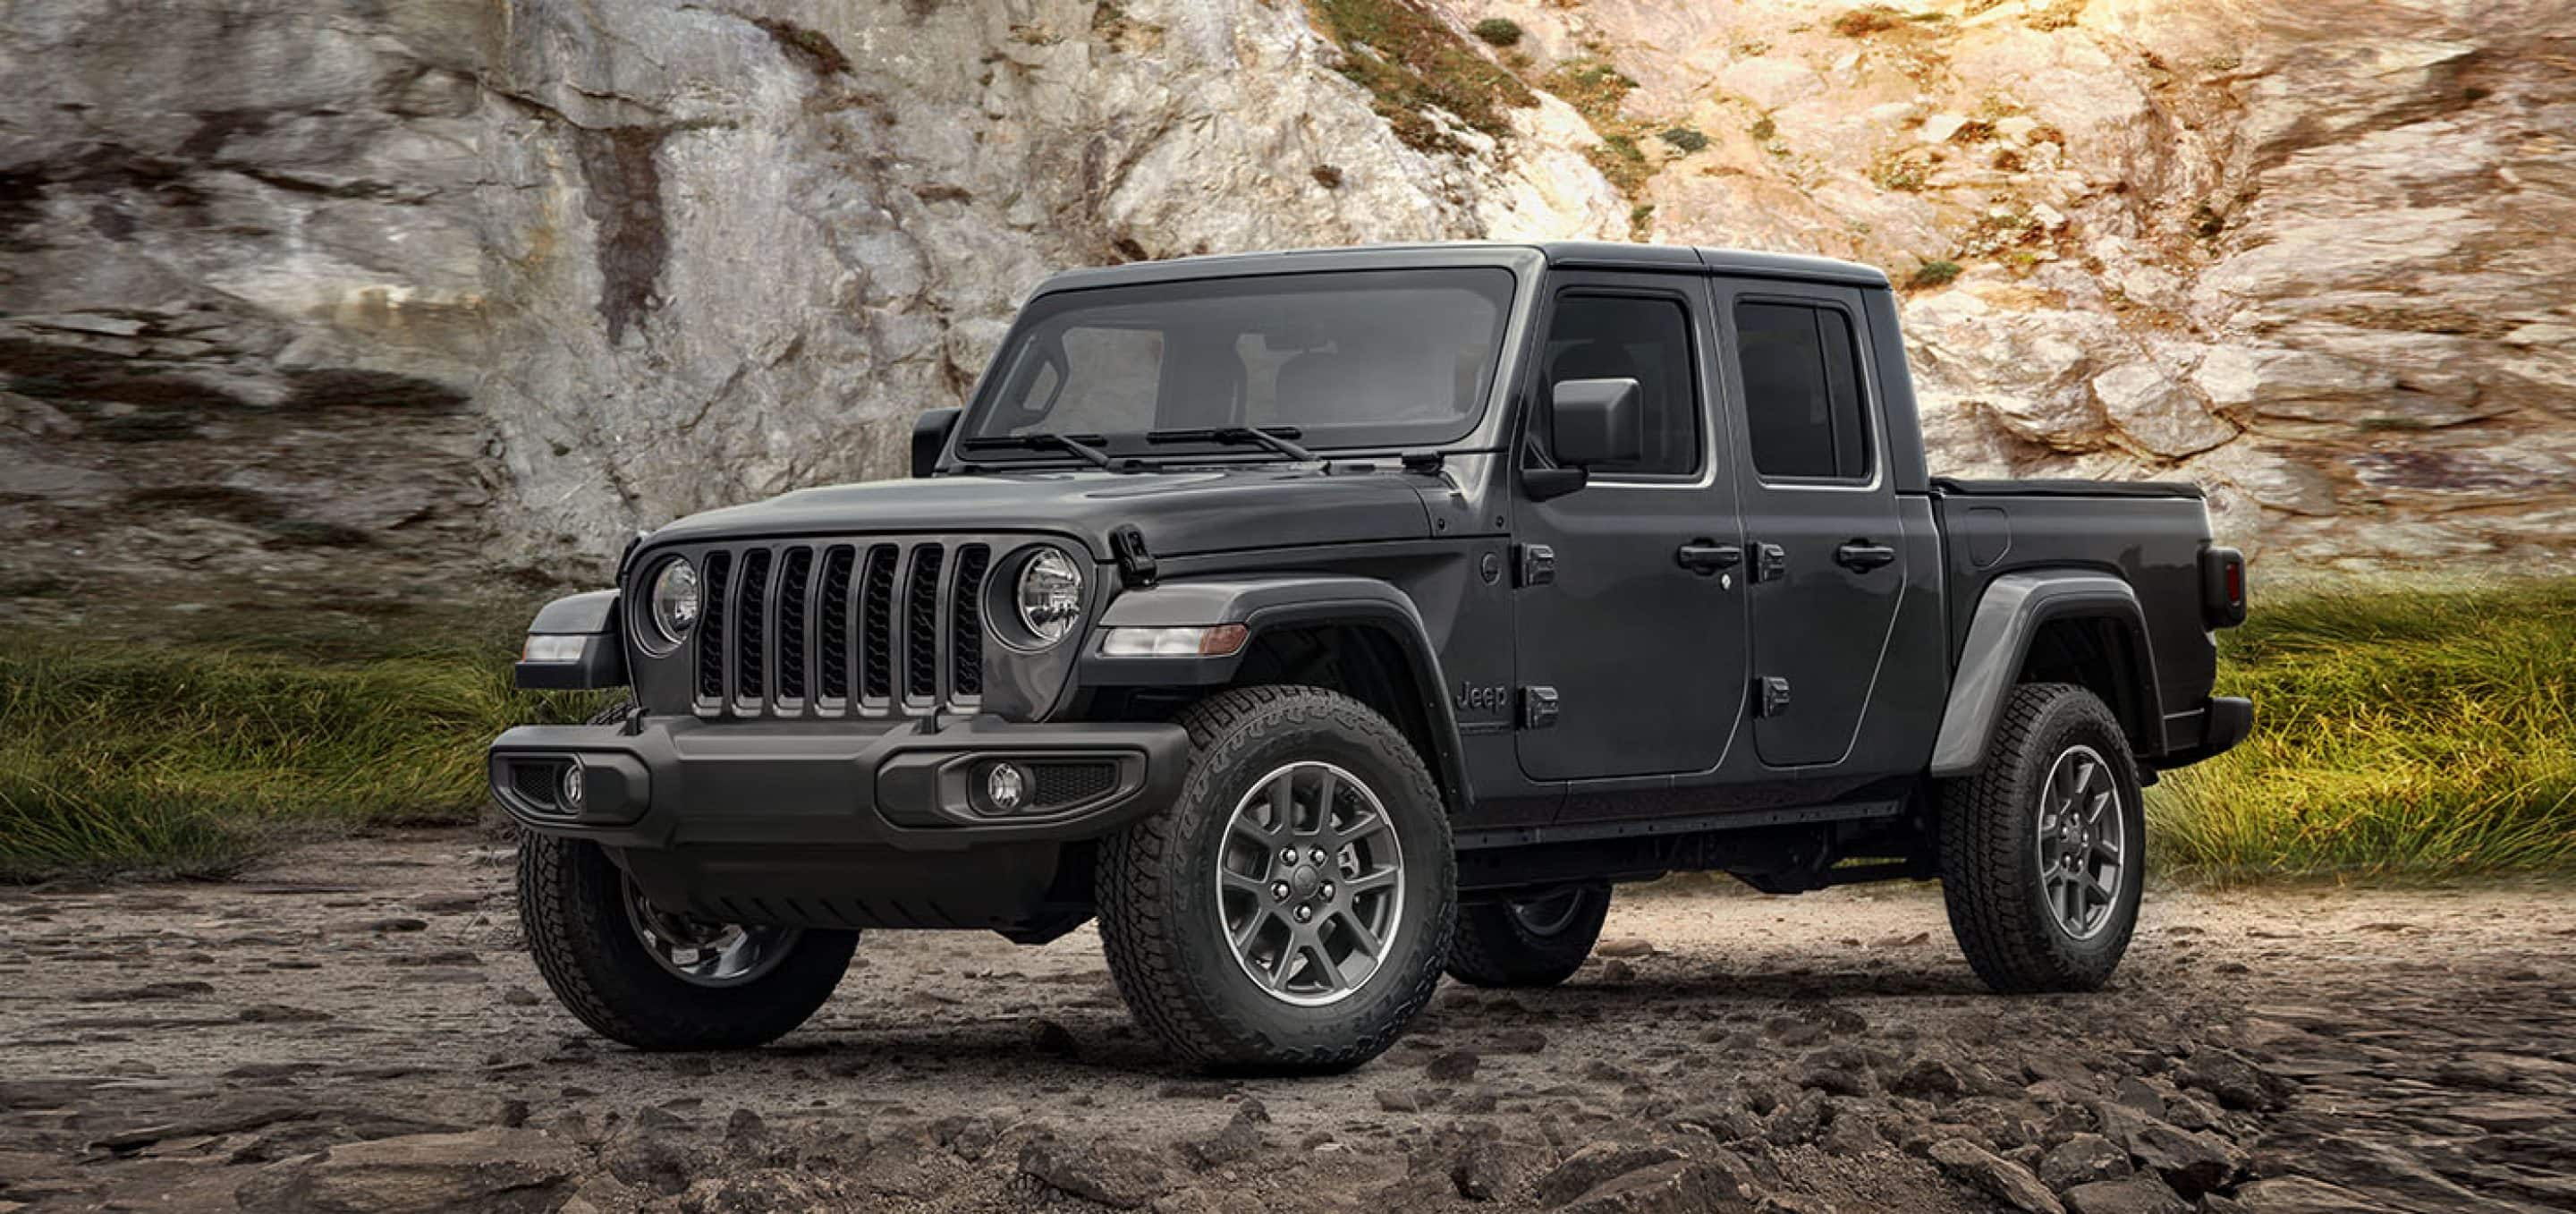 A gray 2021 Jeep Gladiator parked on rocky terrain